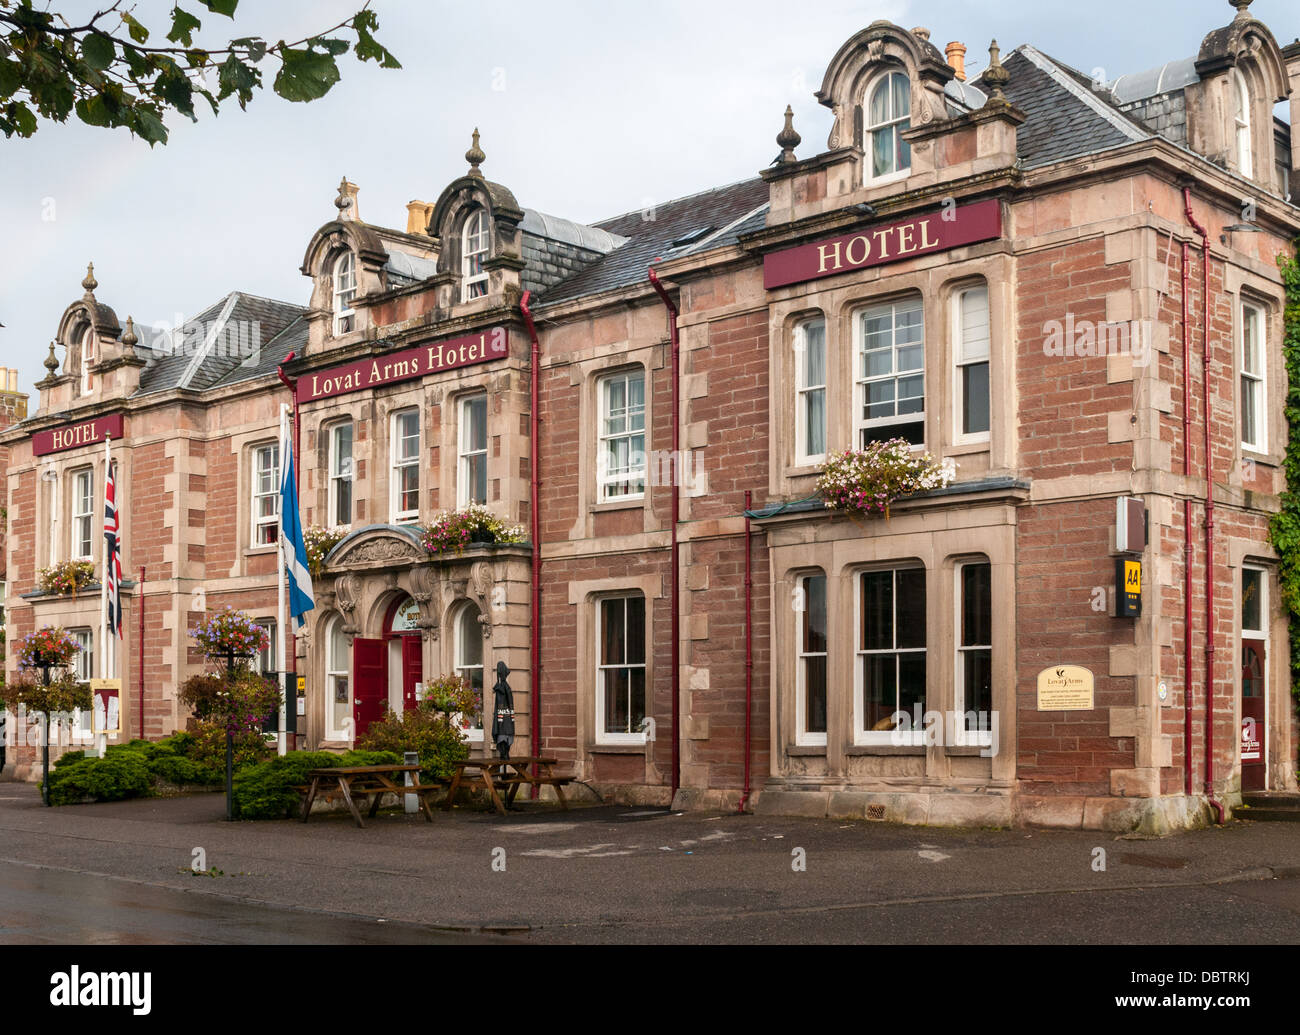 The Lovat Arms Hotel, Beauly near Inverness Scotland